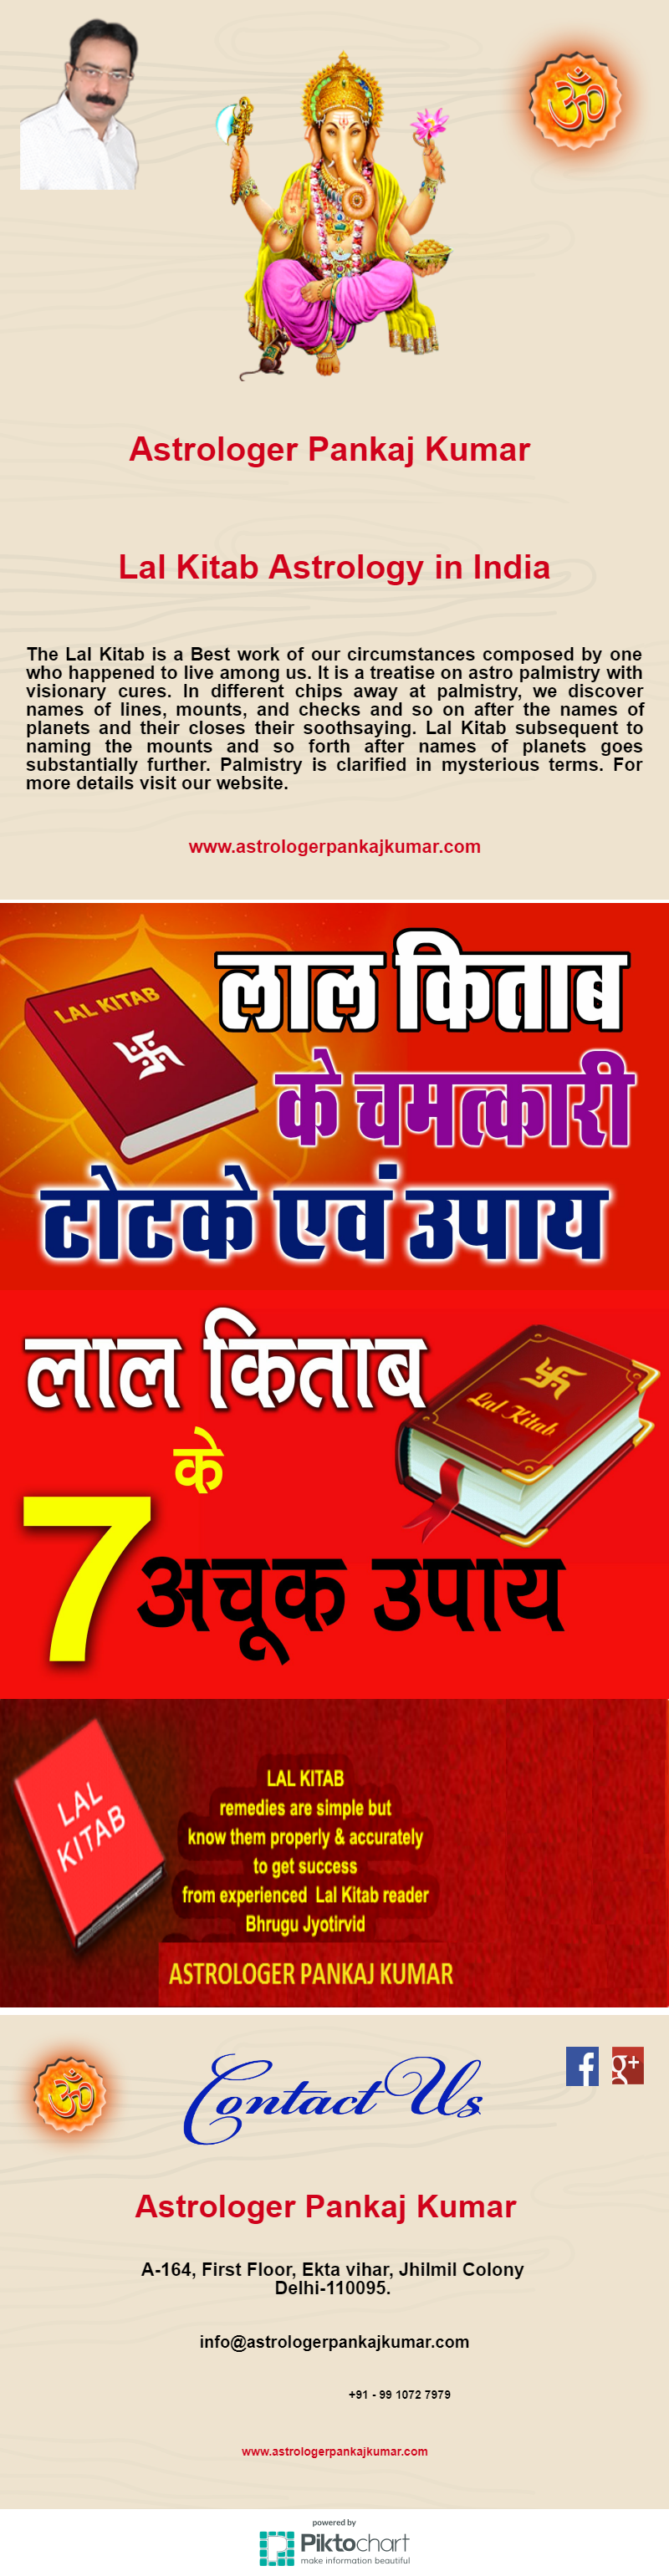 The lal kitab is a best work of our circumstances composed by one contact acharya pankaj kumar for solution of all your career business medical and family problems by simple and effective remedies of lal kitab nvjuhfo Gallery